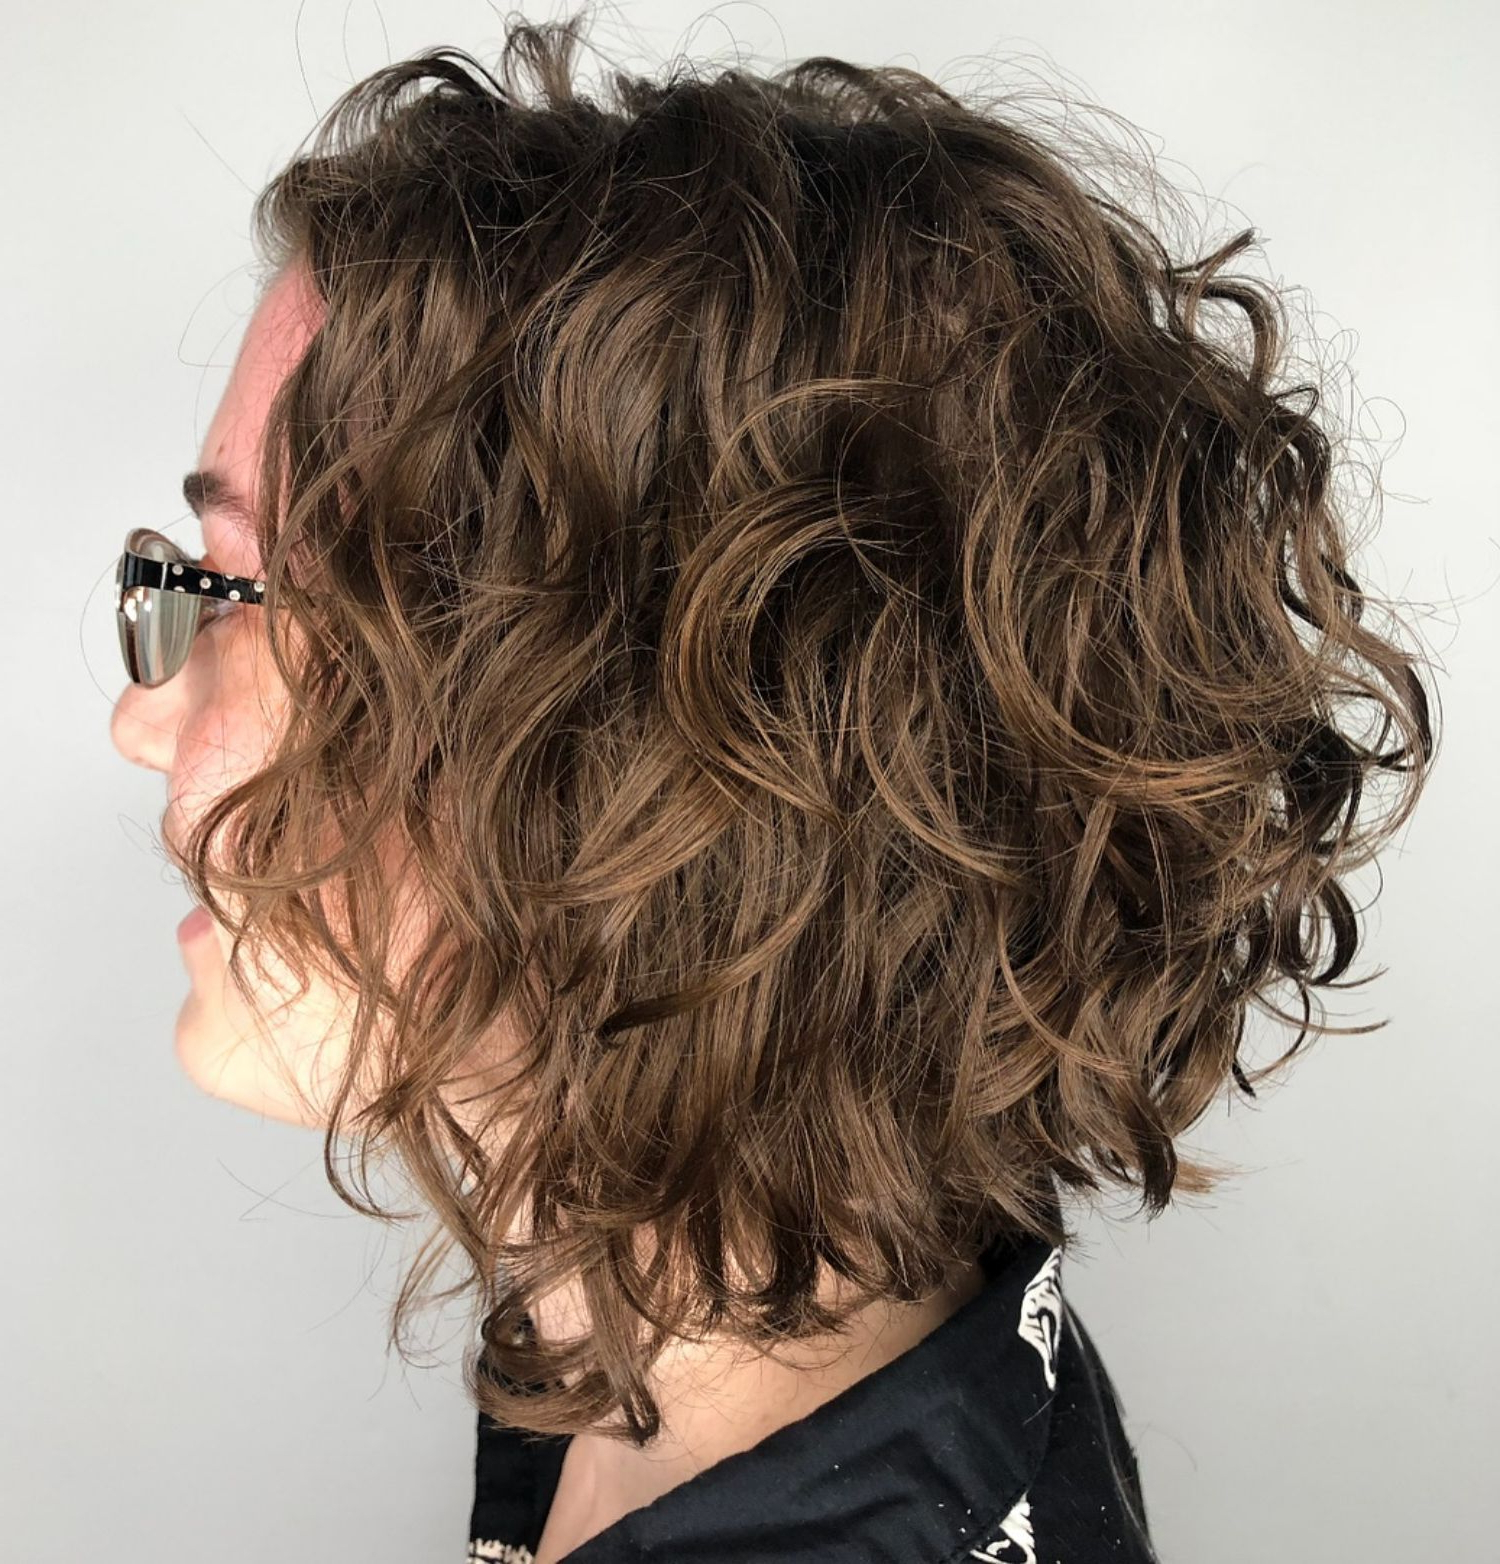 55 Different Versions Of Curly Bob Hairstyle | Fun | Pinterest For Scrunched Curly Brunette Bob Hairstyles (View 9 of 20)